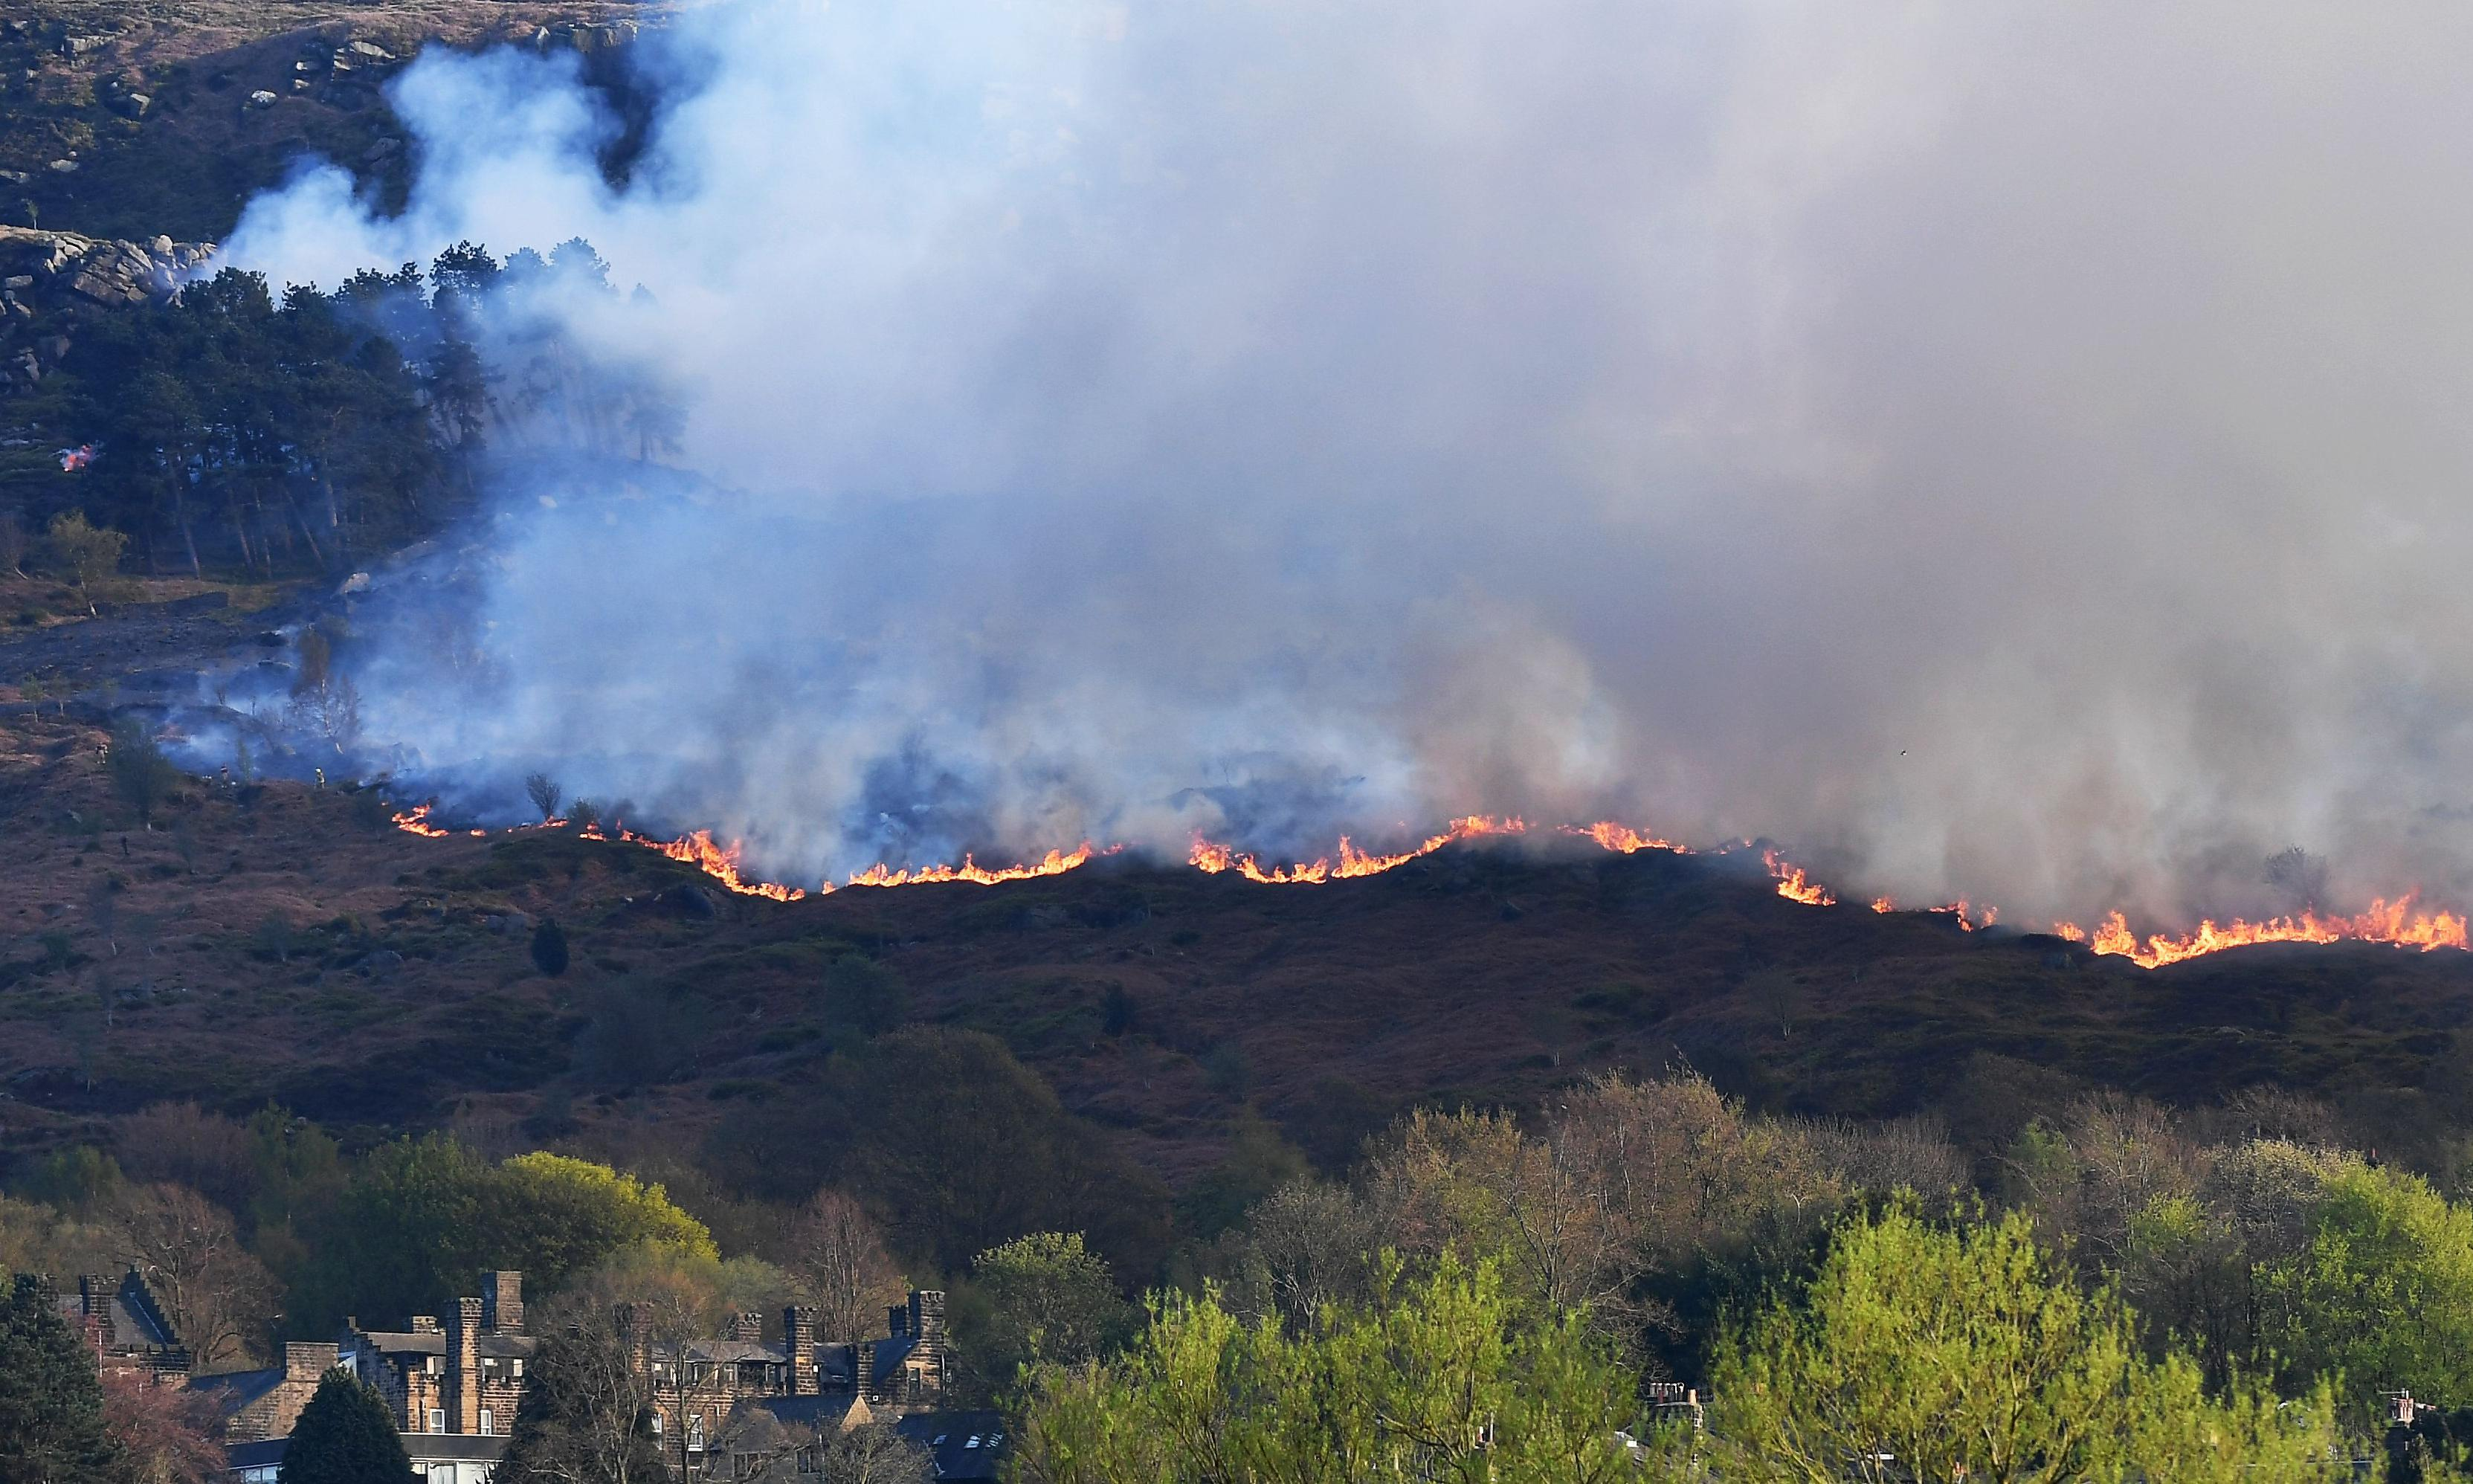 Arrests made over fire on Ilkley Moor in Yorkshire